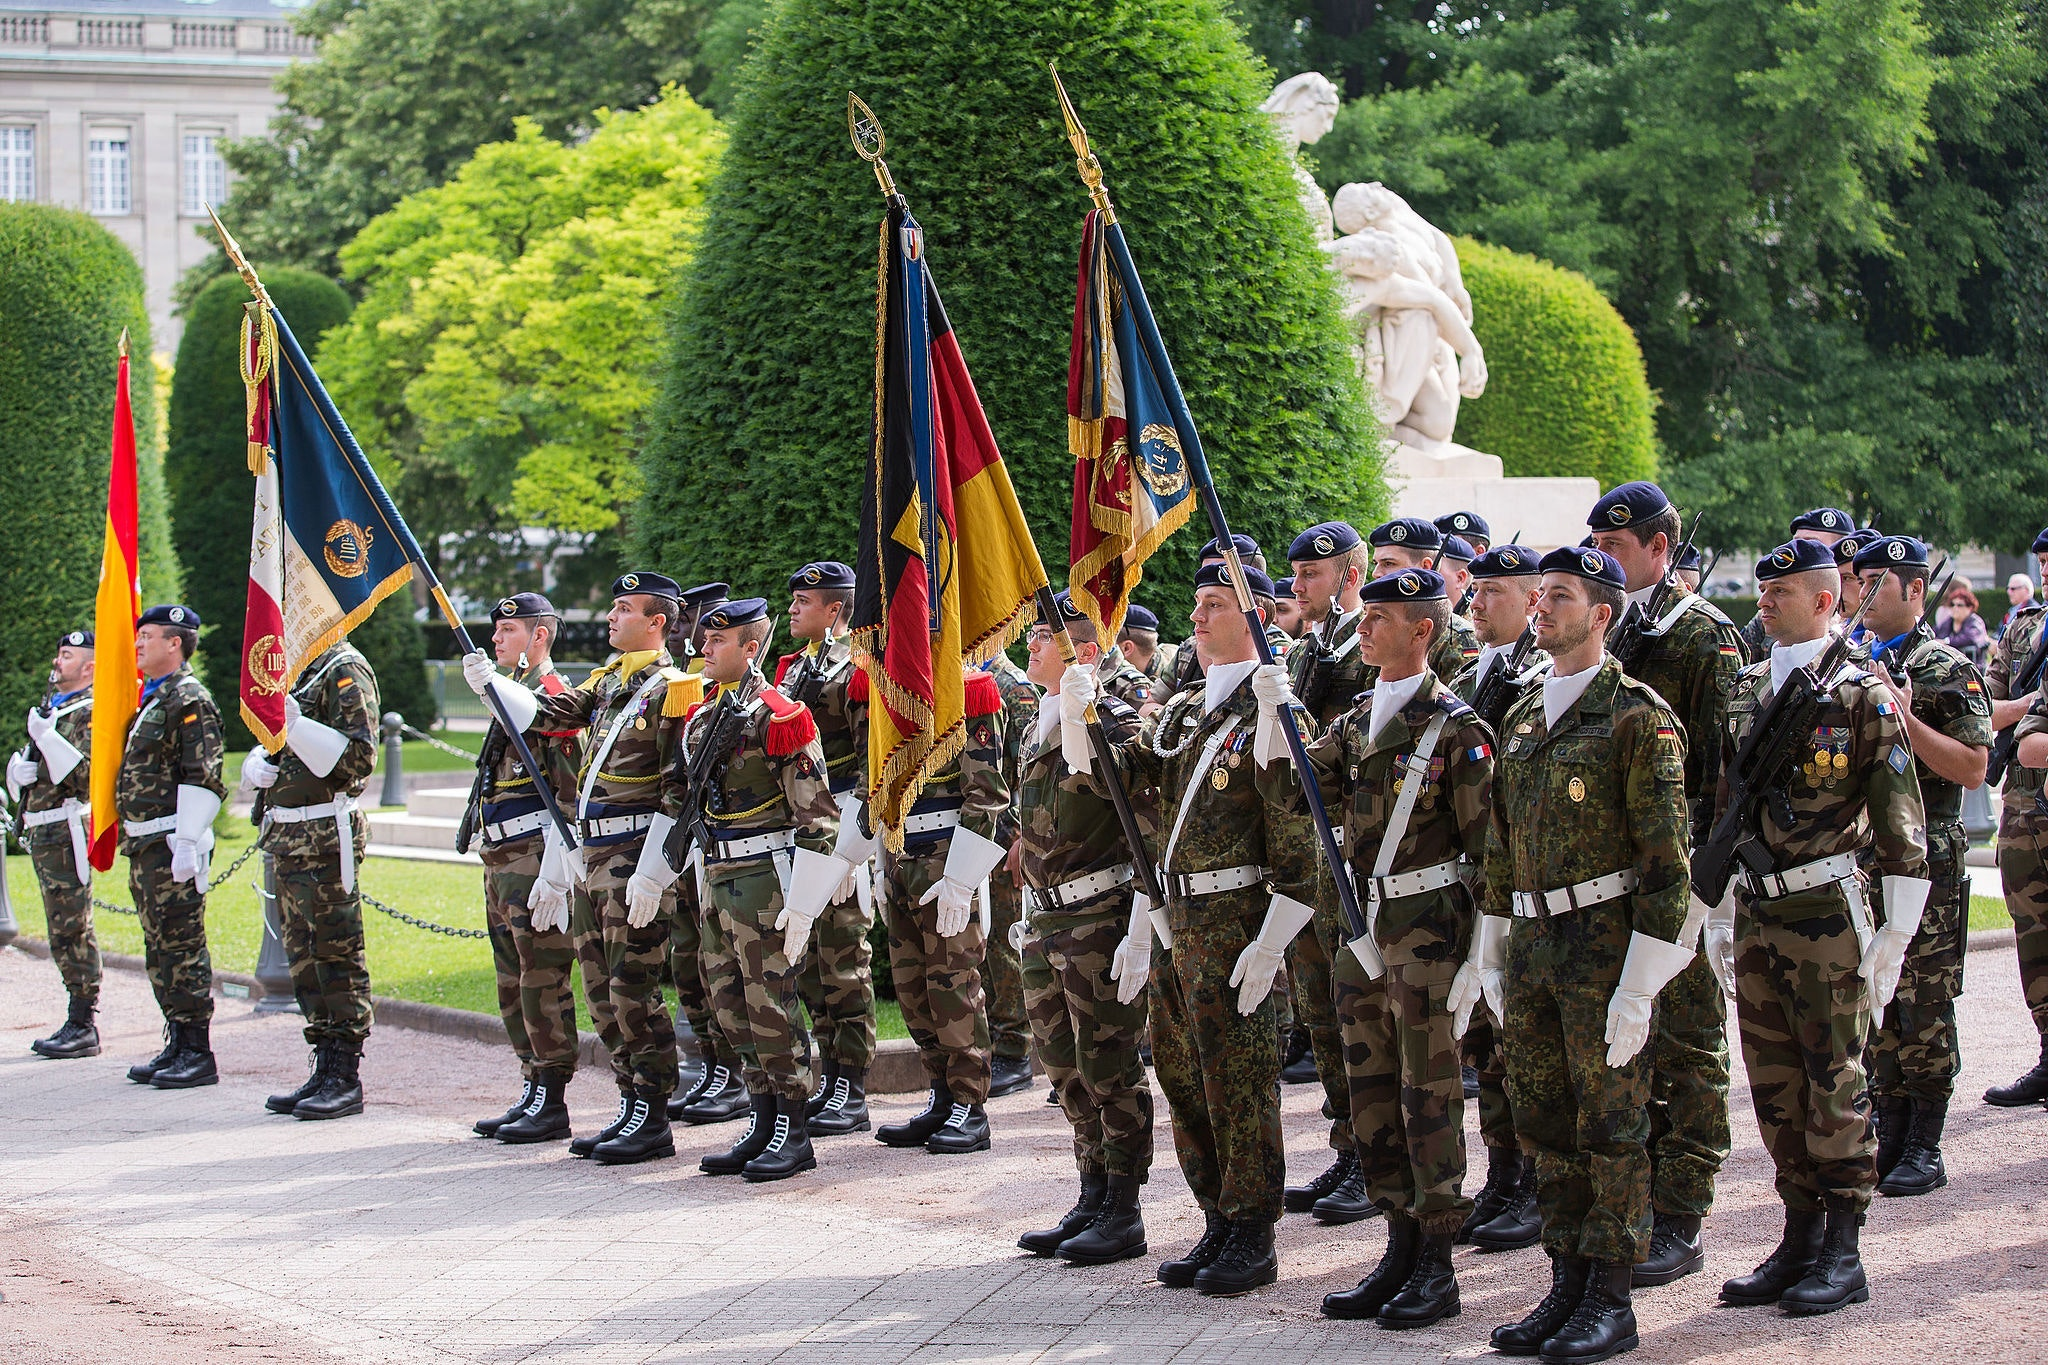 European Union Confirm EU Army Will Launch In 2017 - Your News Wire